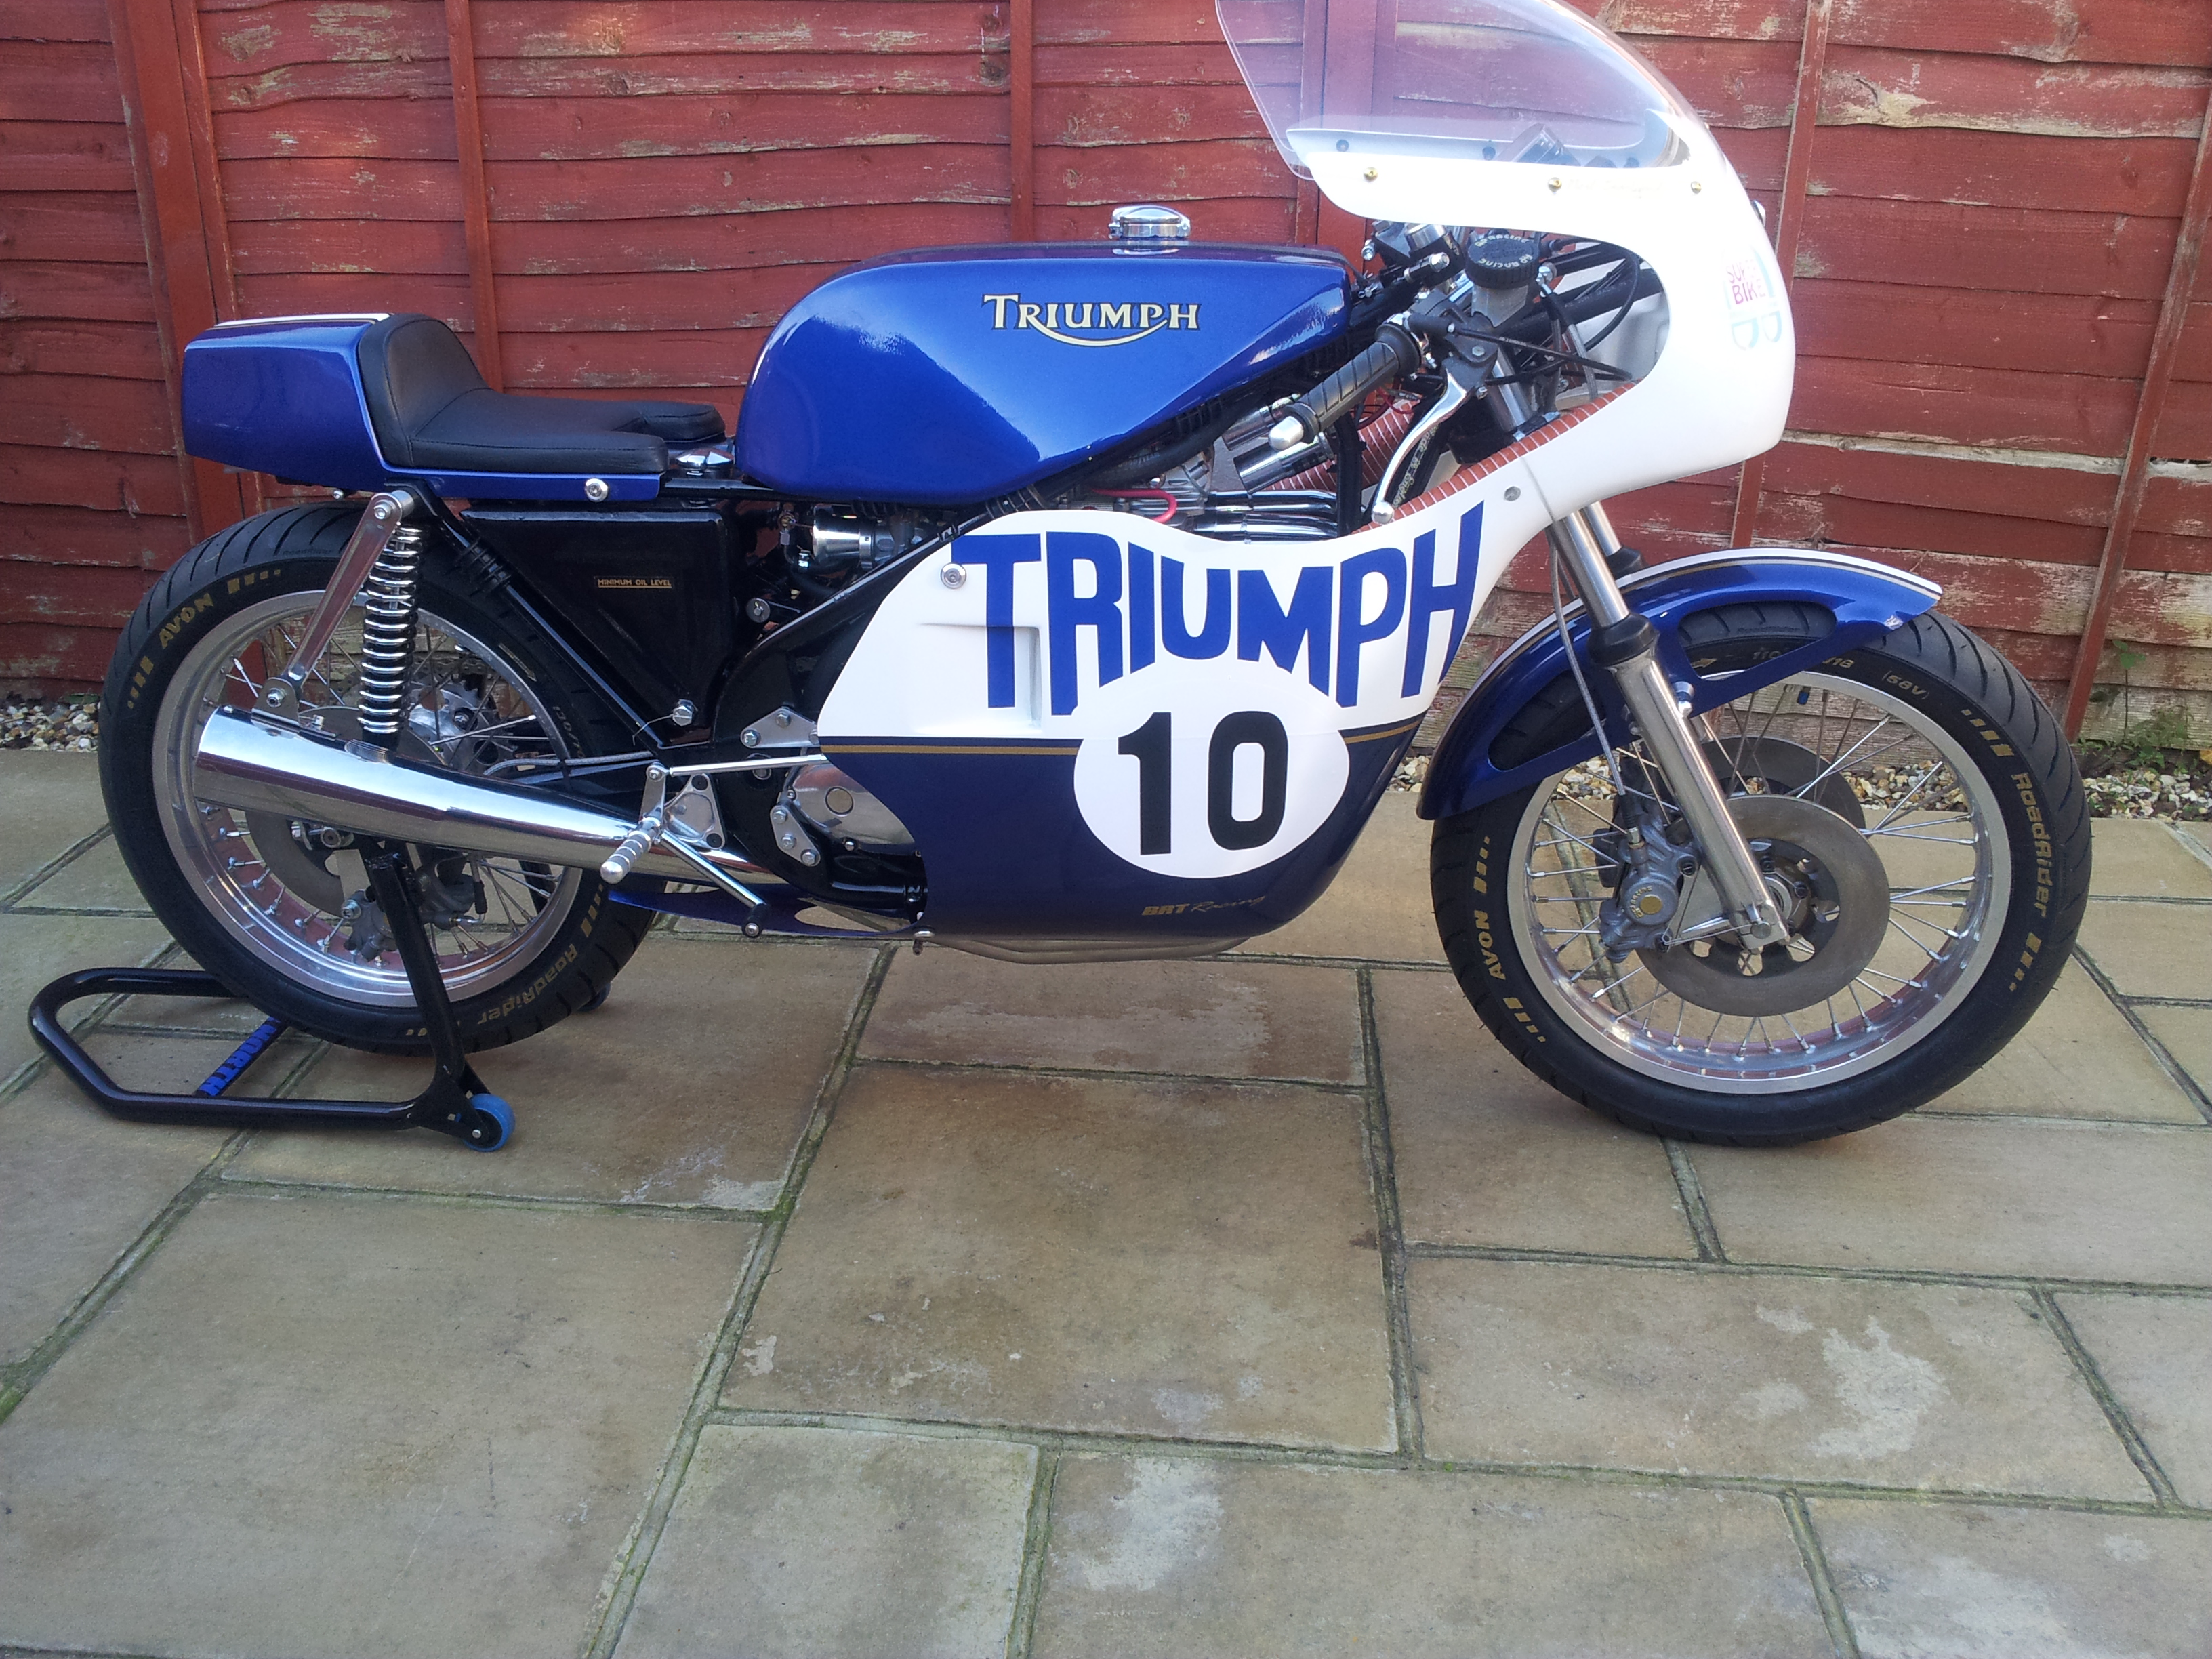 triumph dating Ideni1ficatlon, dating & production figures as with the earlier cars, triumph used a logical numerical series of commission numbers with alphabetical prefixes and.